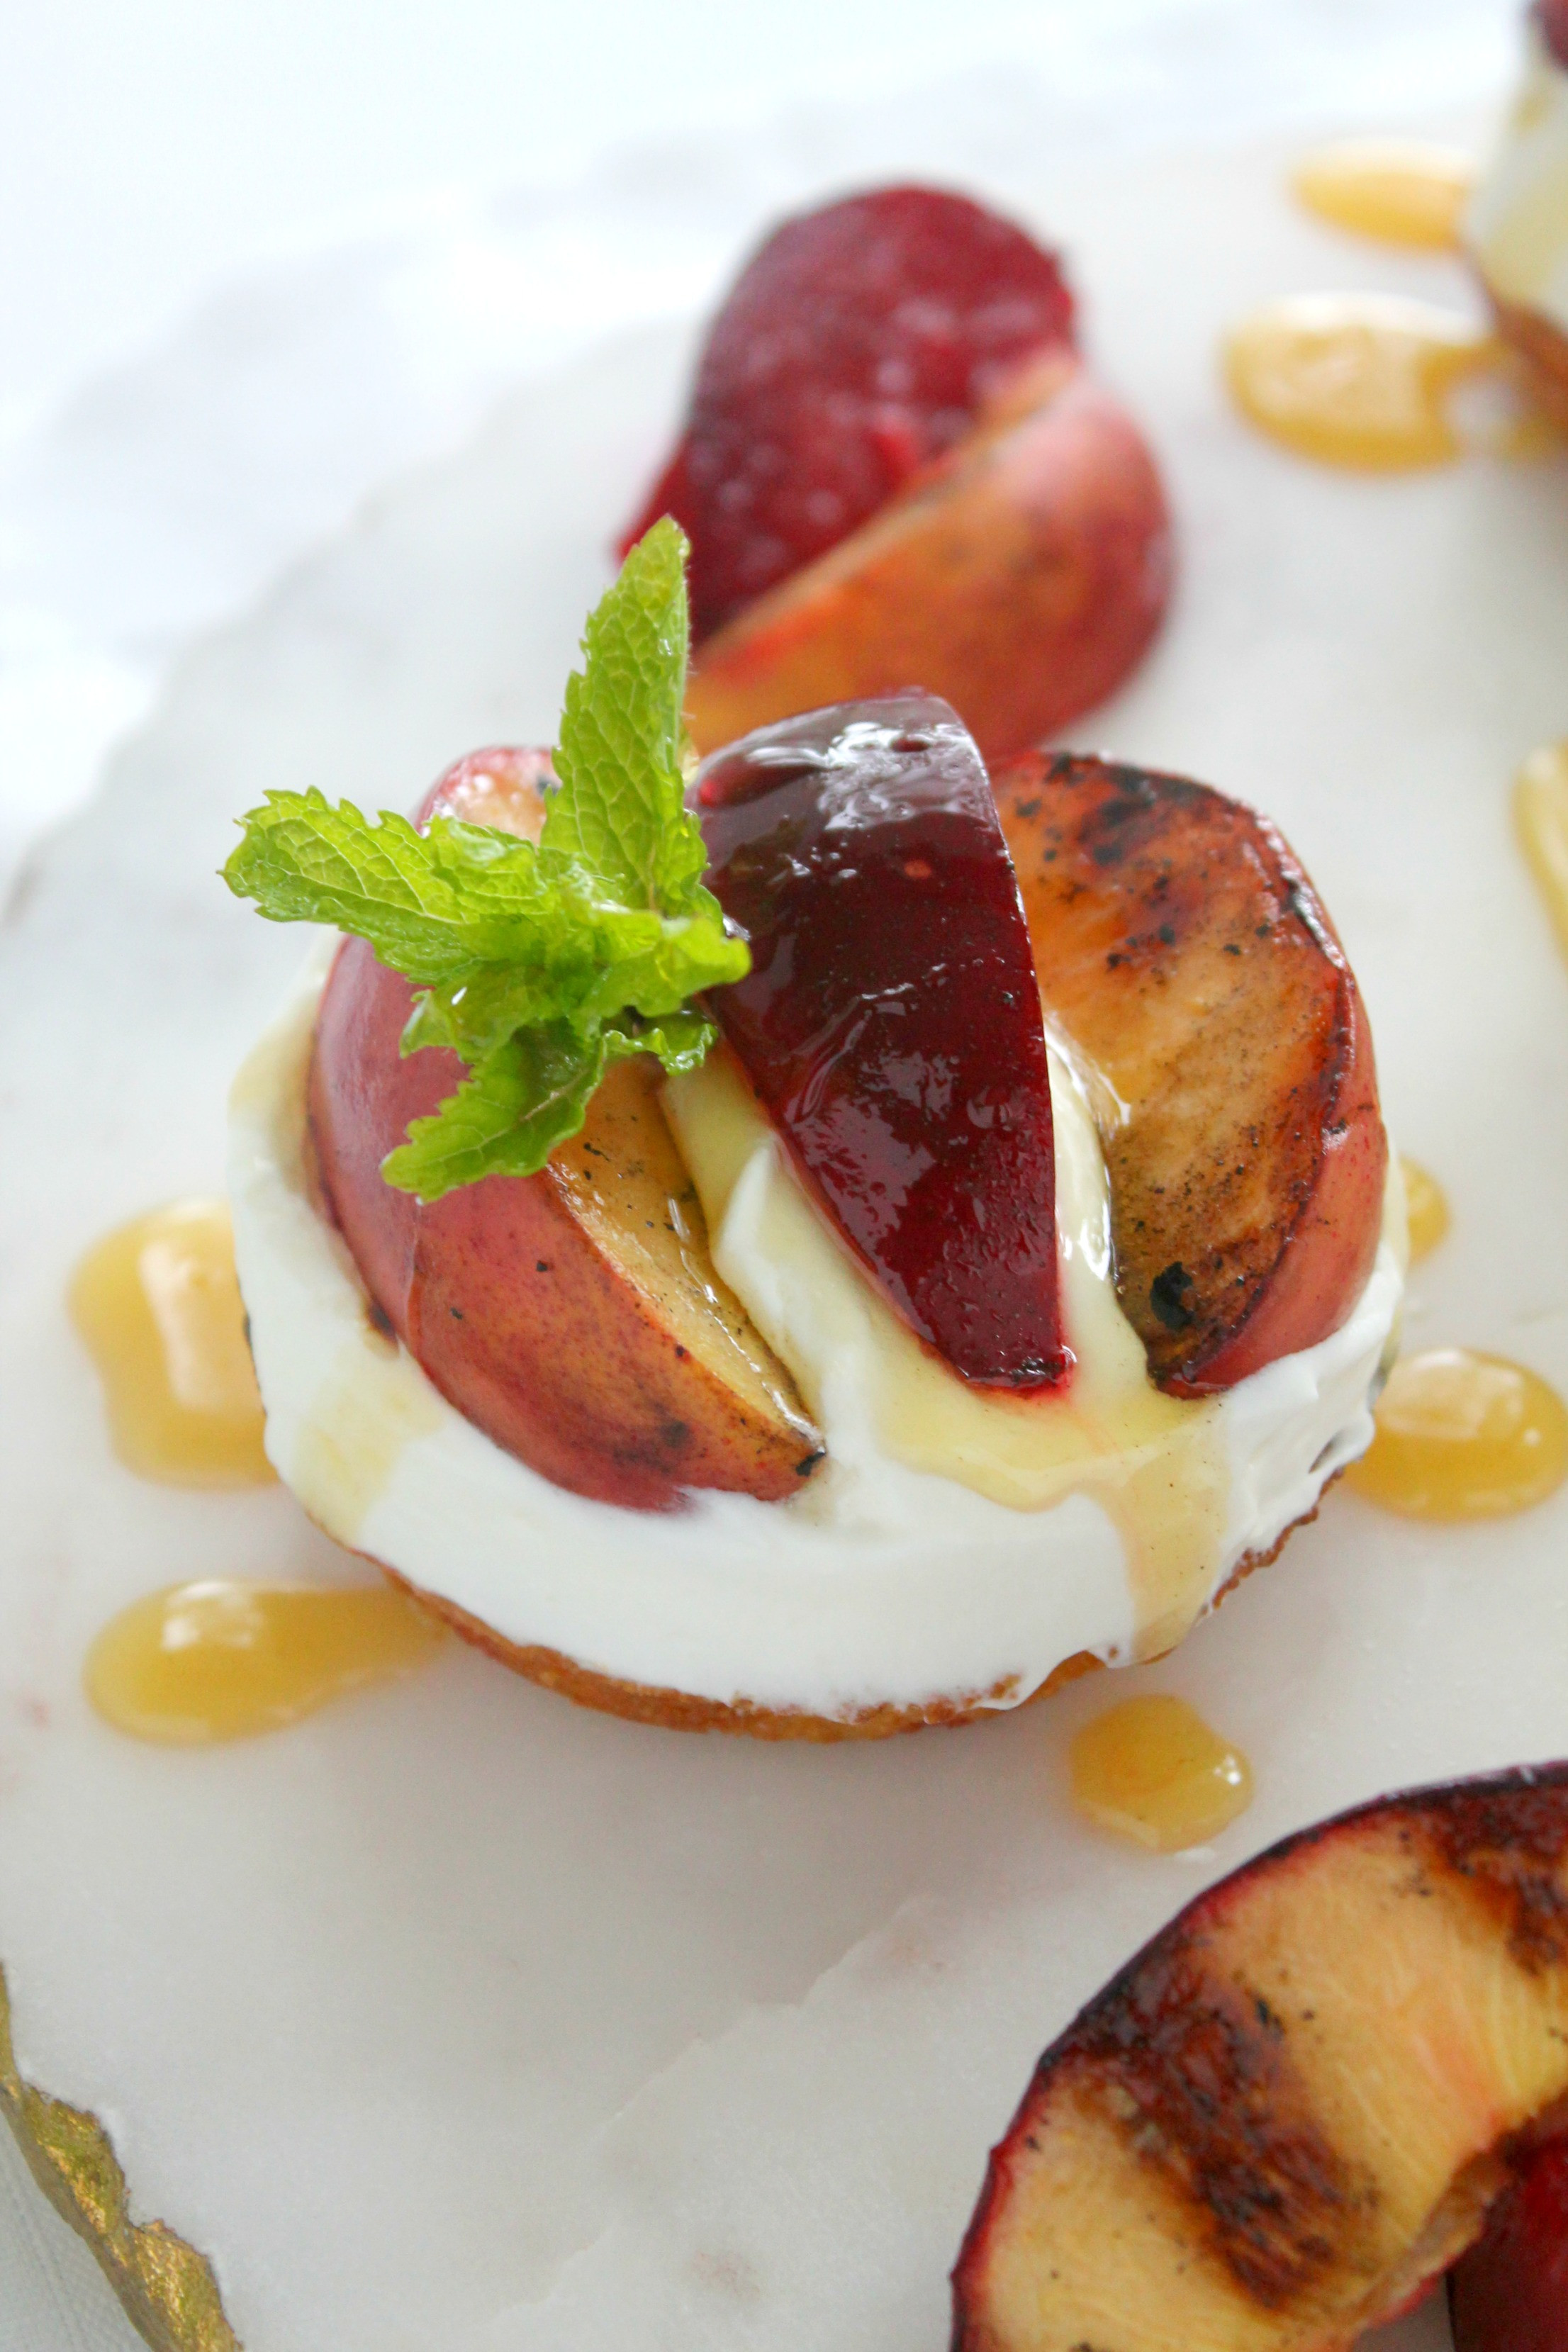 Summer Desserts For Bbq  11 Grilled Desserts Your BBQ Guests Will Drool Over